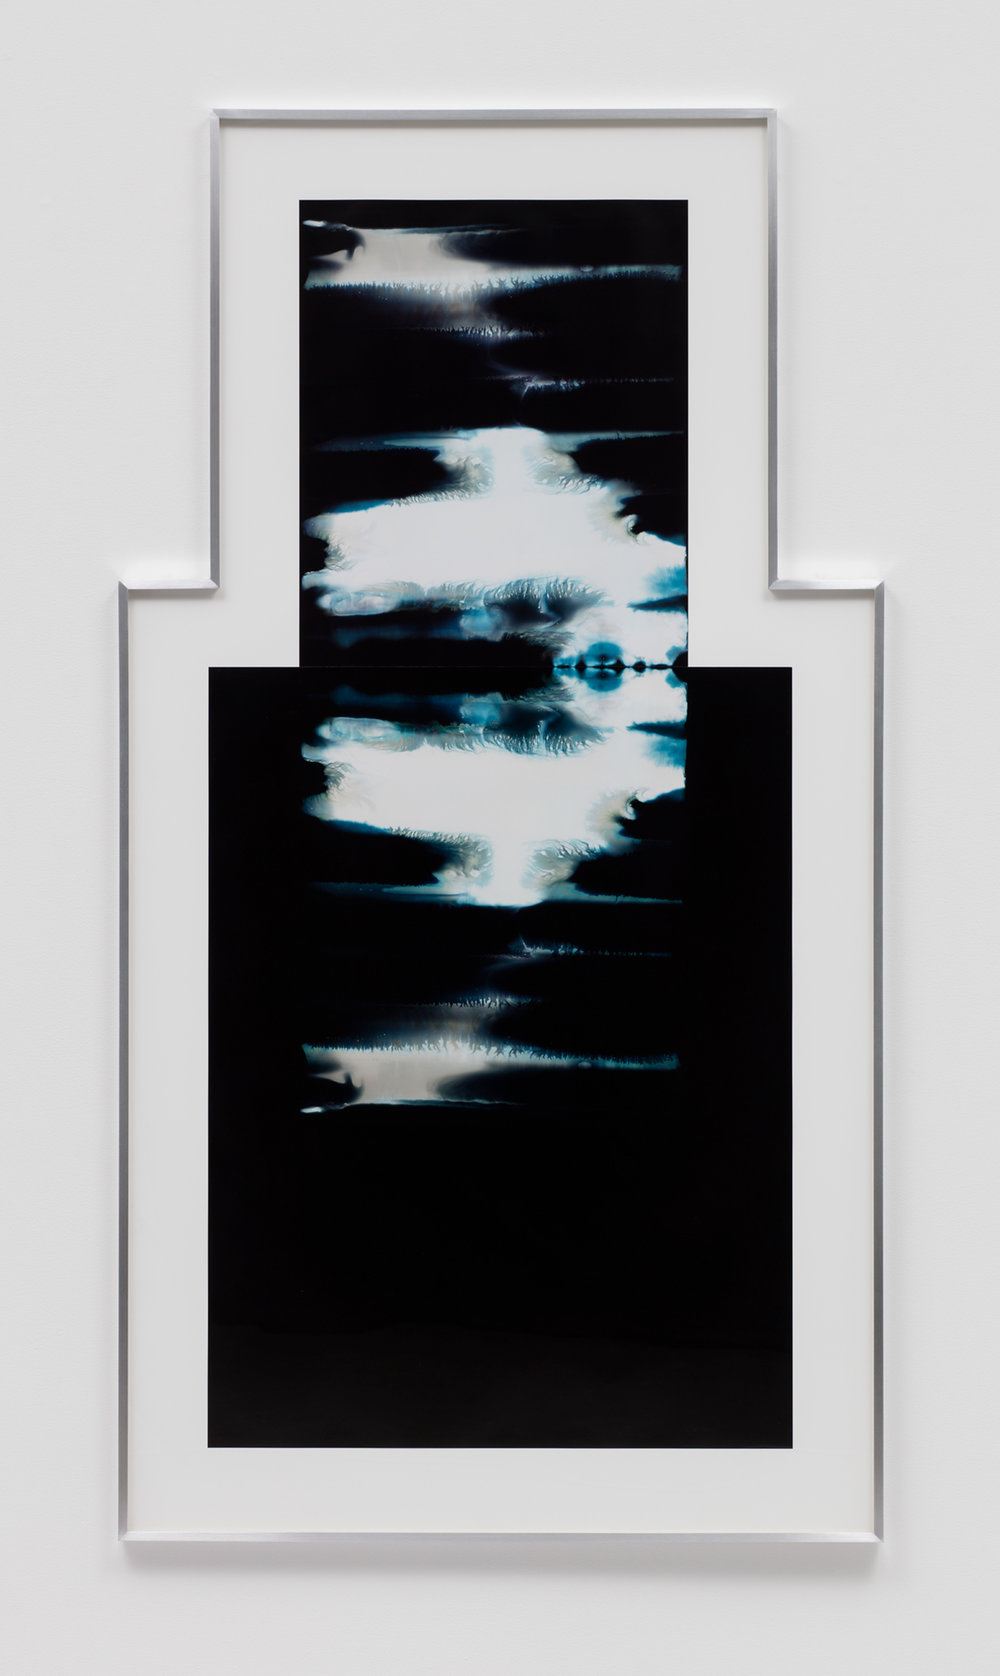 Asymmetrical Inverted RA4 Contact Print / Processor Stall (YMC: Los Angeles, California, January 16, 2018; Fujicolor Crystal Archive Super Type C, Em. No. 159-016 / Fujicolor Crystal Archive Super Type II, Em. No. 859809B217; Kodak Ektacolor RA Bleach-Fix and Replenisher; Kreonite KM IV 5225 RA4 Color Processor, Ser. No. 00092174; 01518)   2018  Color photographic paper  73 x 39 inches   Equivalents, 2018